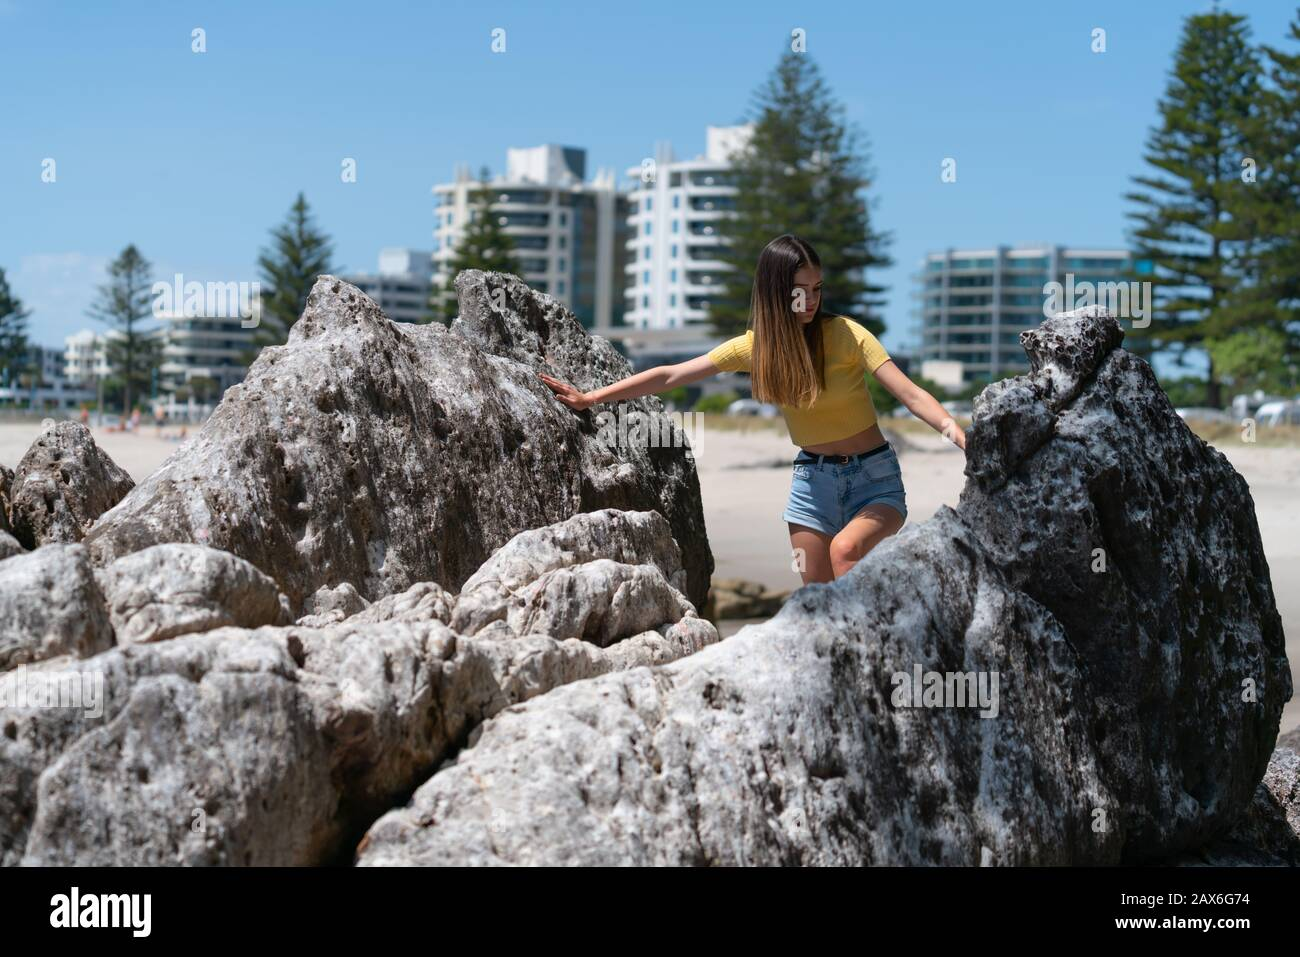 Teenage girl in yellow top and denim short pants climbs over and between rocks on Mount Maunganui main beach with Norfolk Pines and apartment building Stock Photo